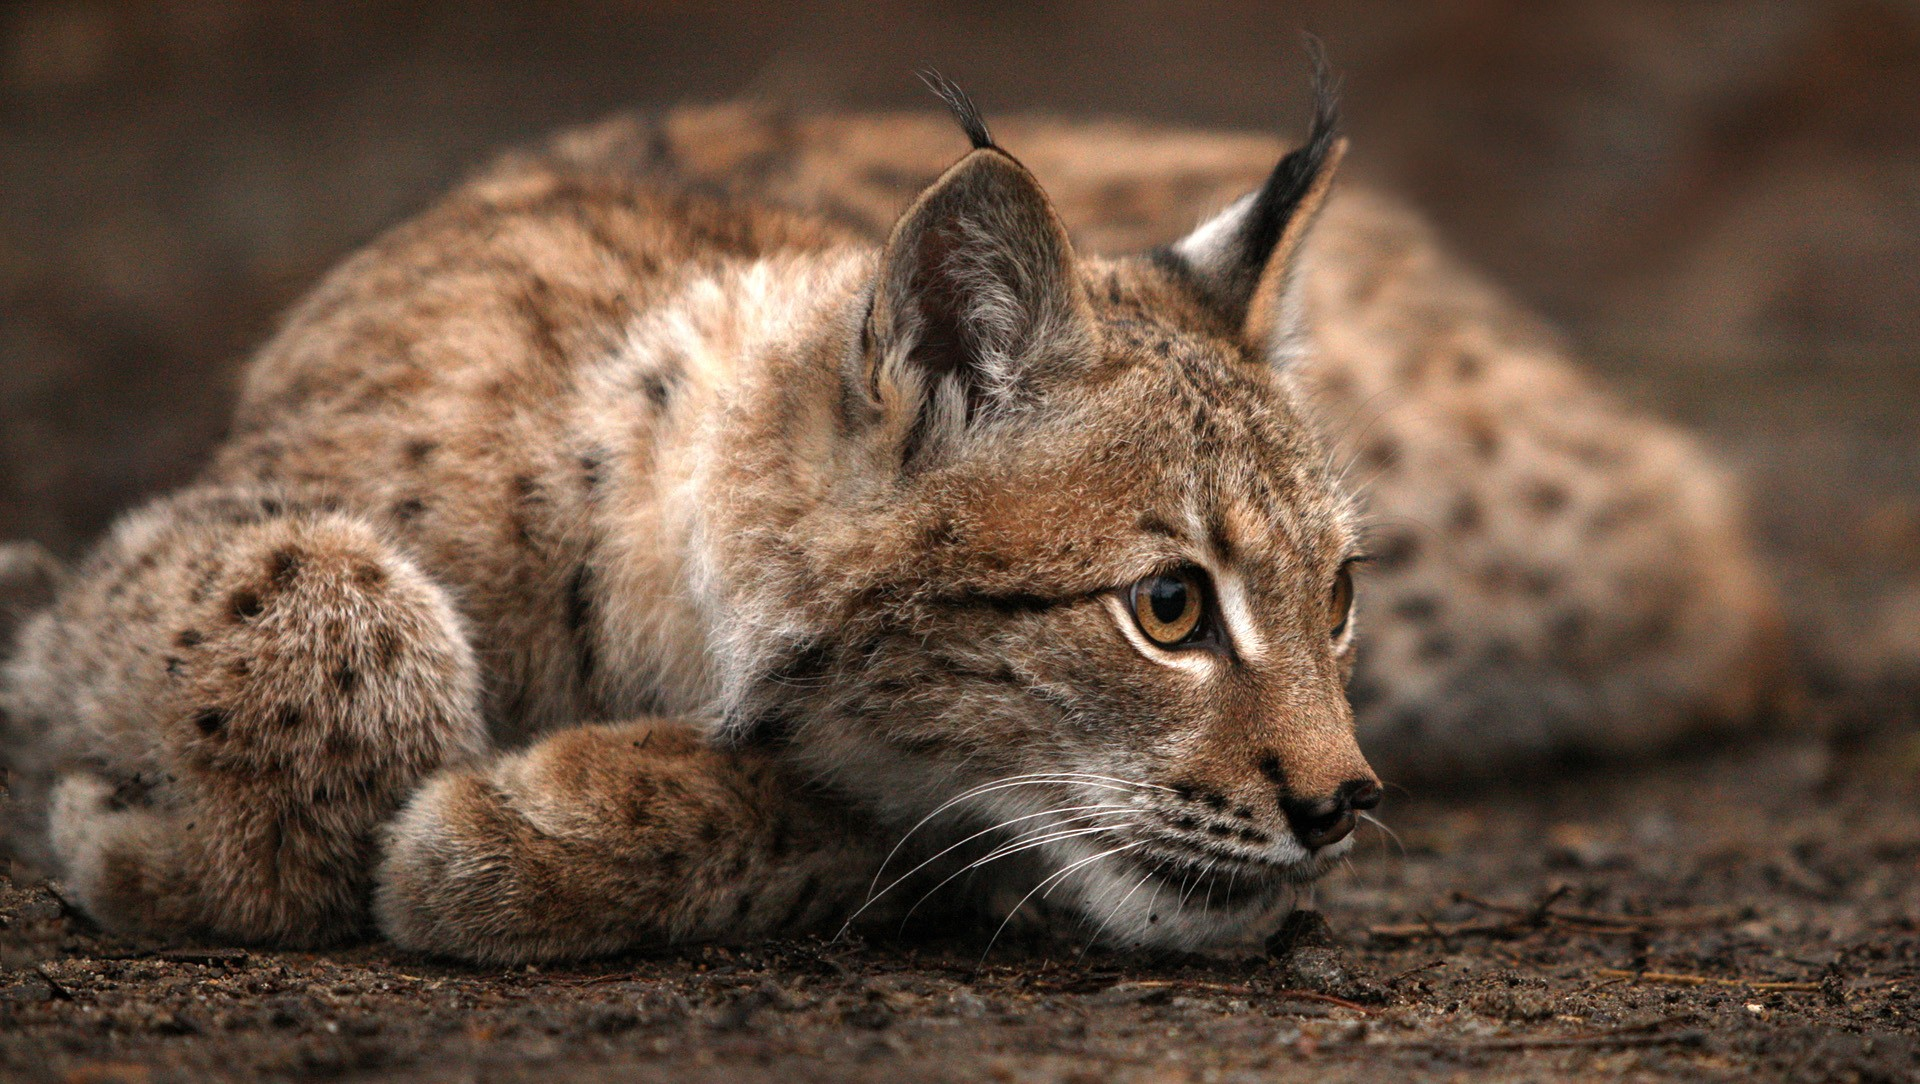 lynx images